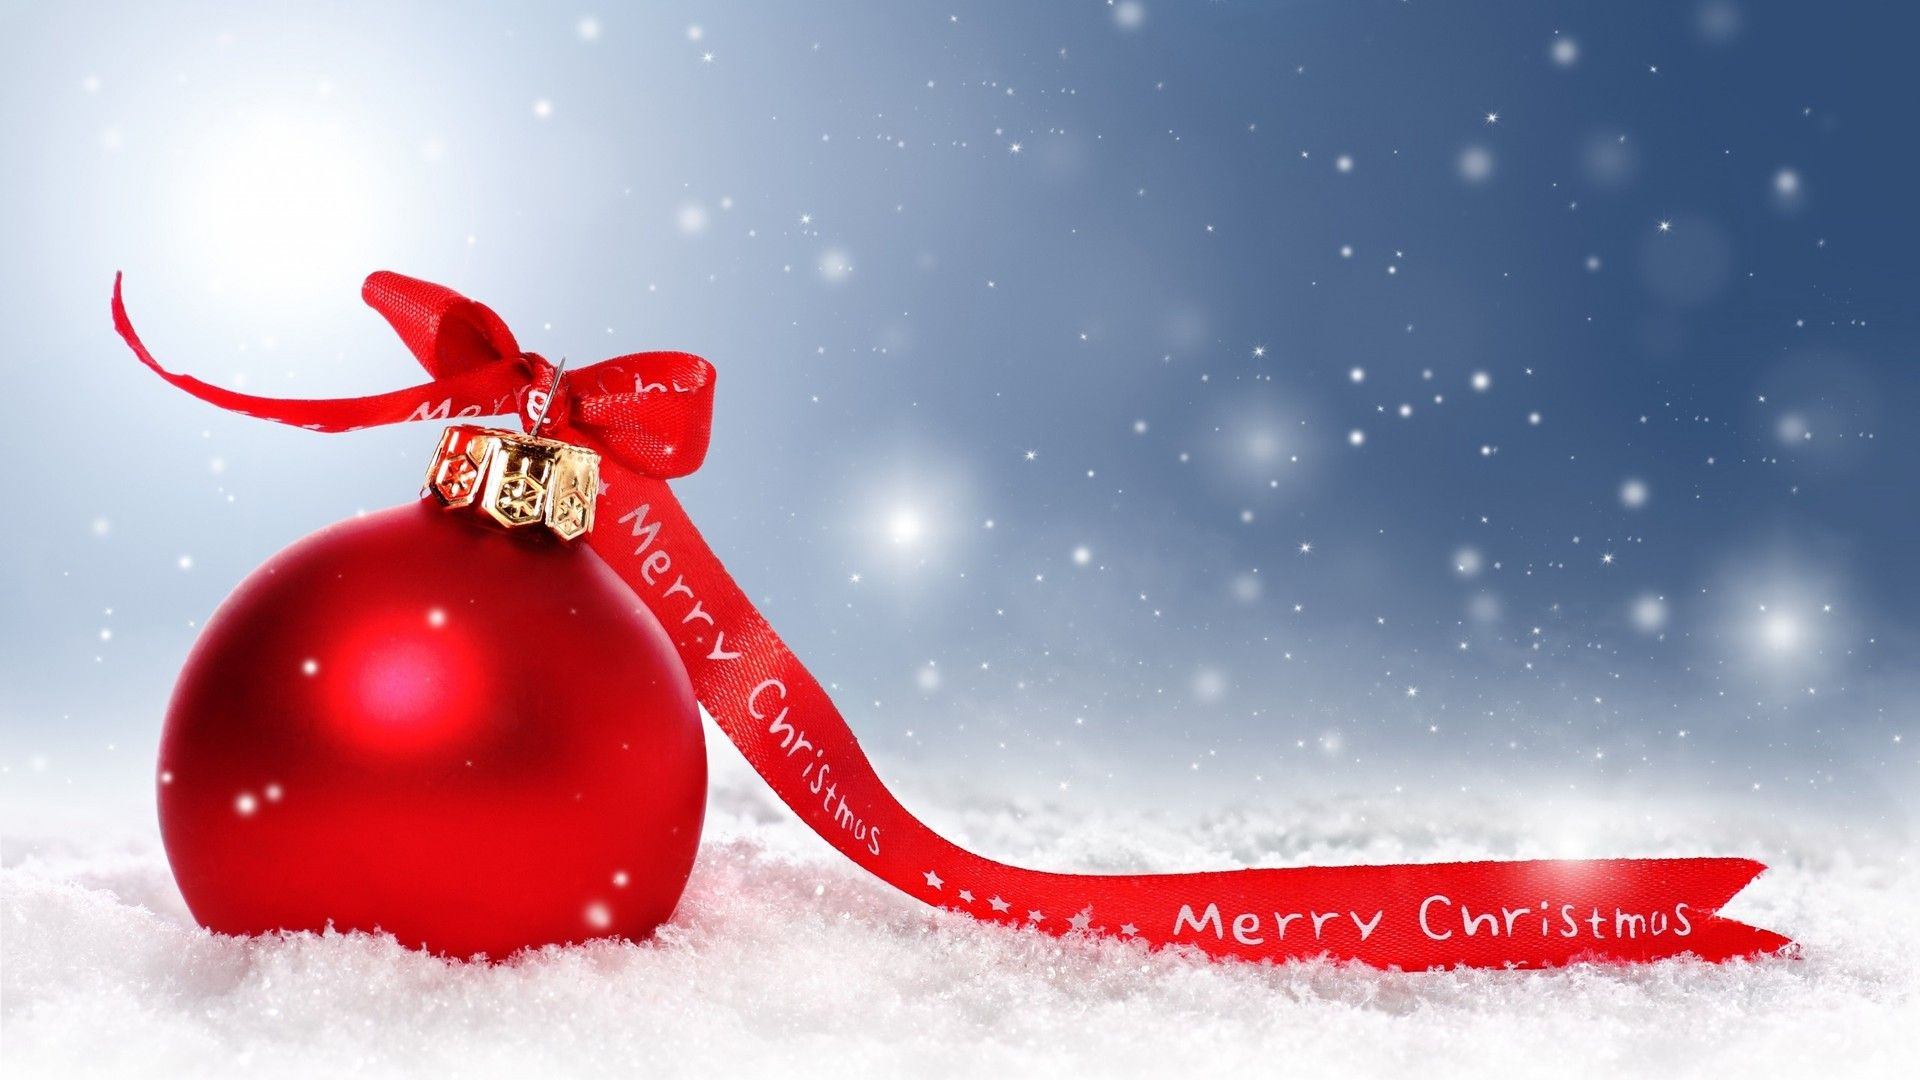 wallpaper download 1920x1080 big red christmas ball - merry